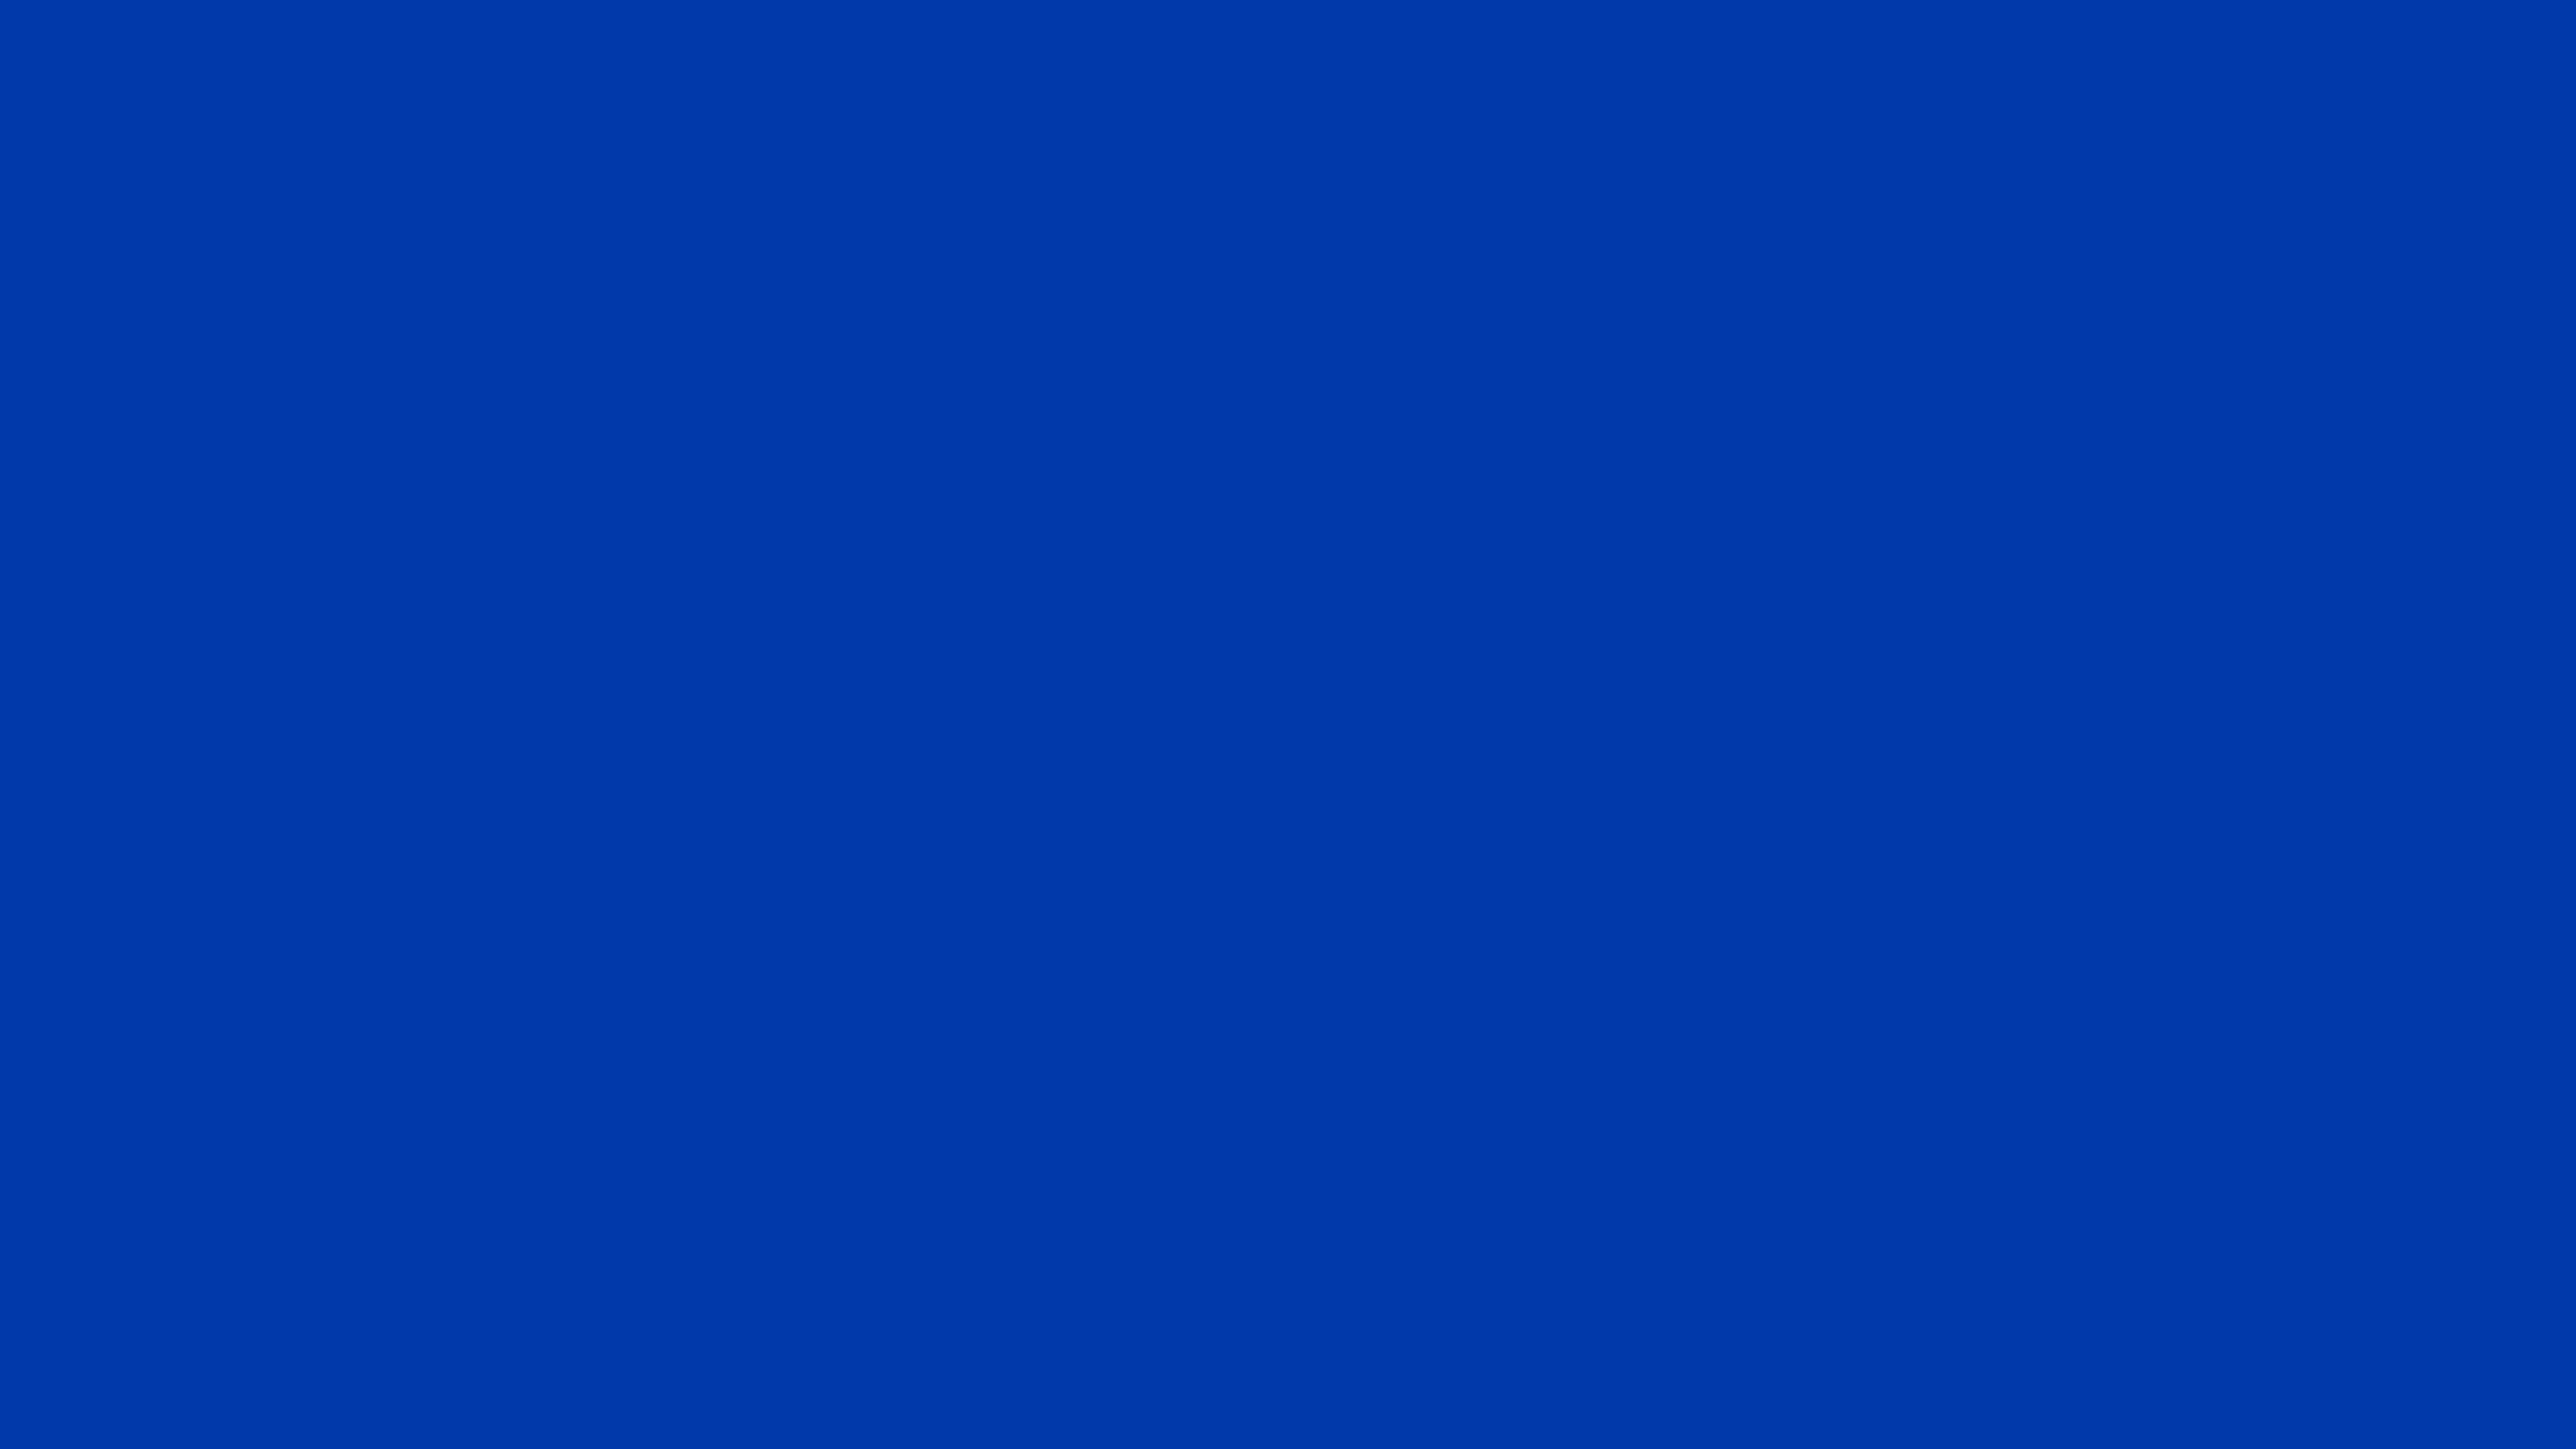 5120x2880 Royal Azure Solid Color Background